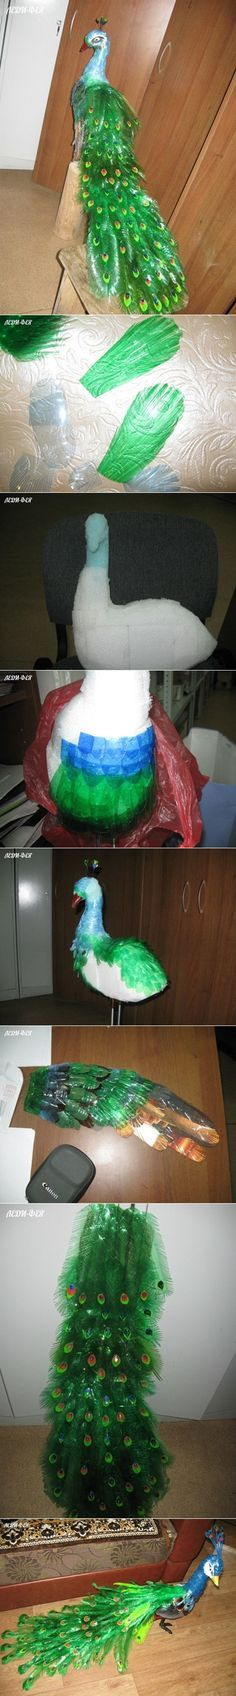 This Colorful Beautiful Peaaxcock from Plastic Bottles....3 Unique Plastic Bottles Recycling Ideas For Home Decor #DIYCrafts